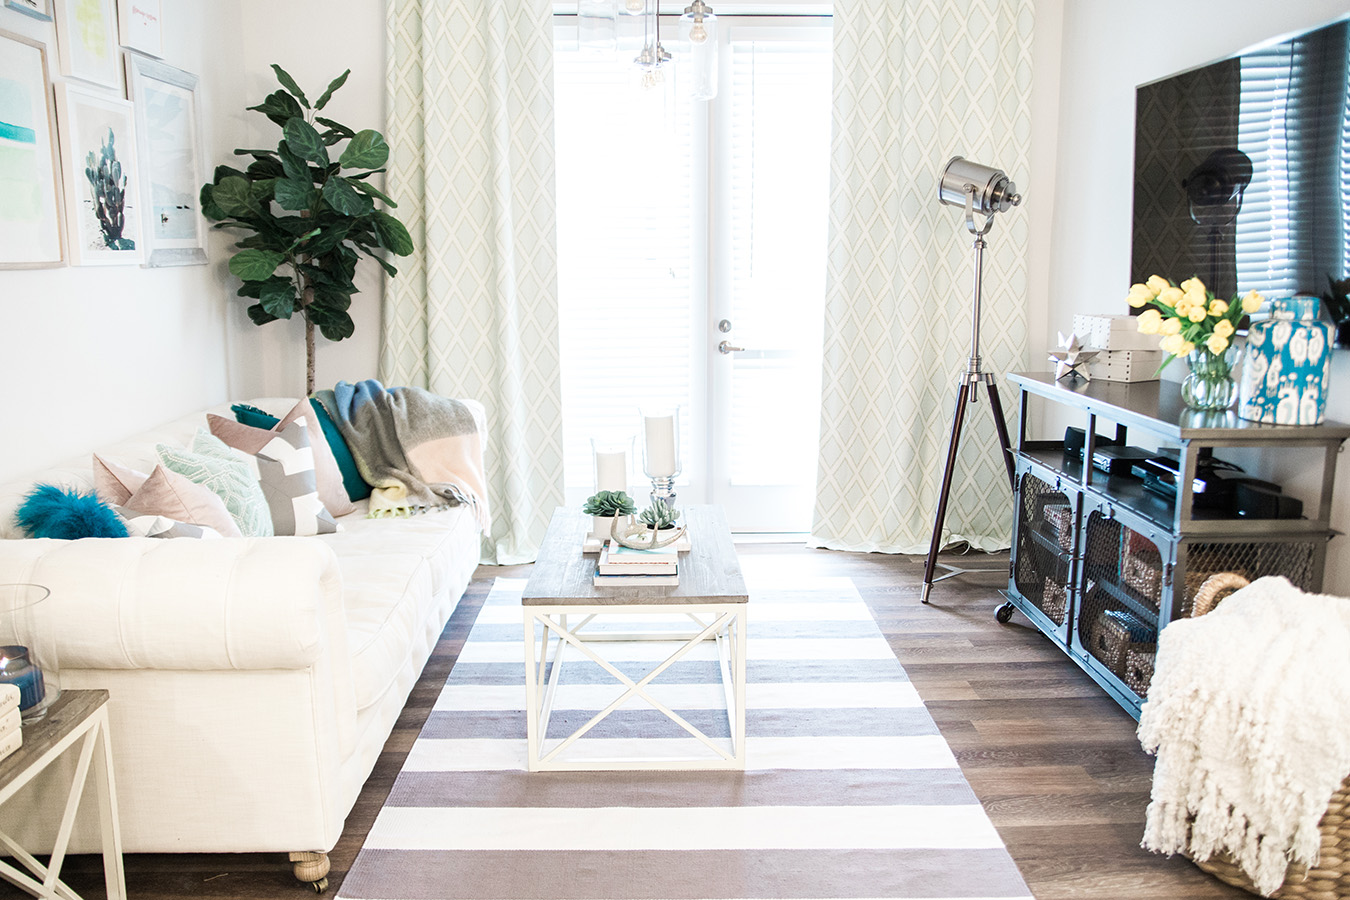 """Hang Curtains All The Way To The Ground"""" title_align=""""separator_align_center"""" el_width=""""100″ style=""""solid"""" accent_color=""""#EEEEEE"""" padding=""""20px 0″ ..."""